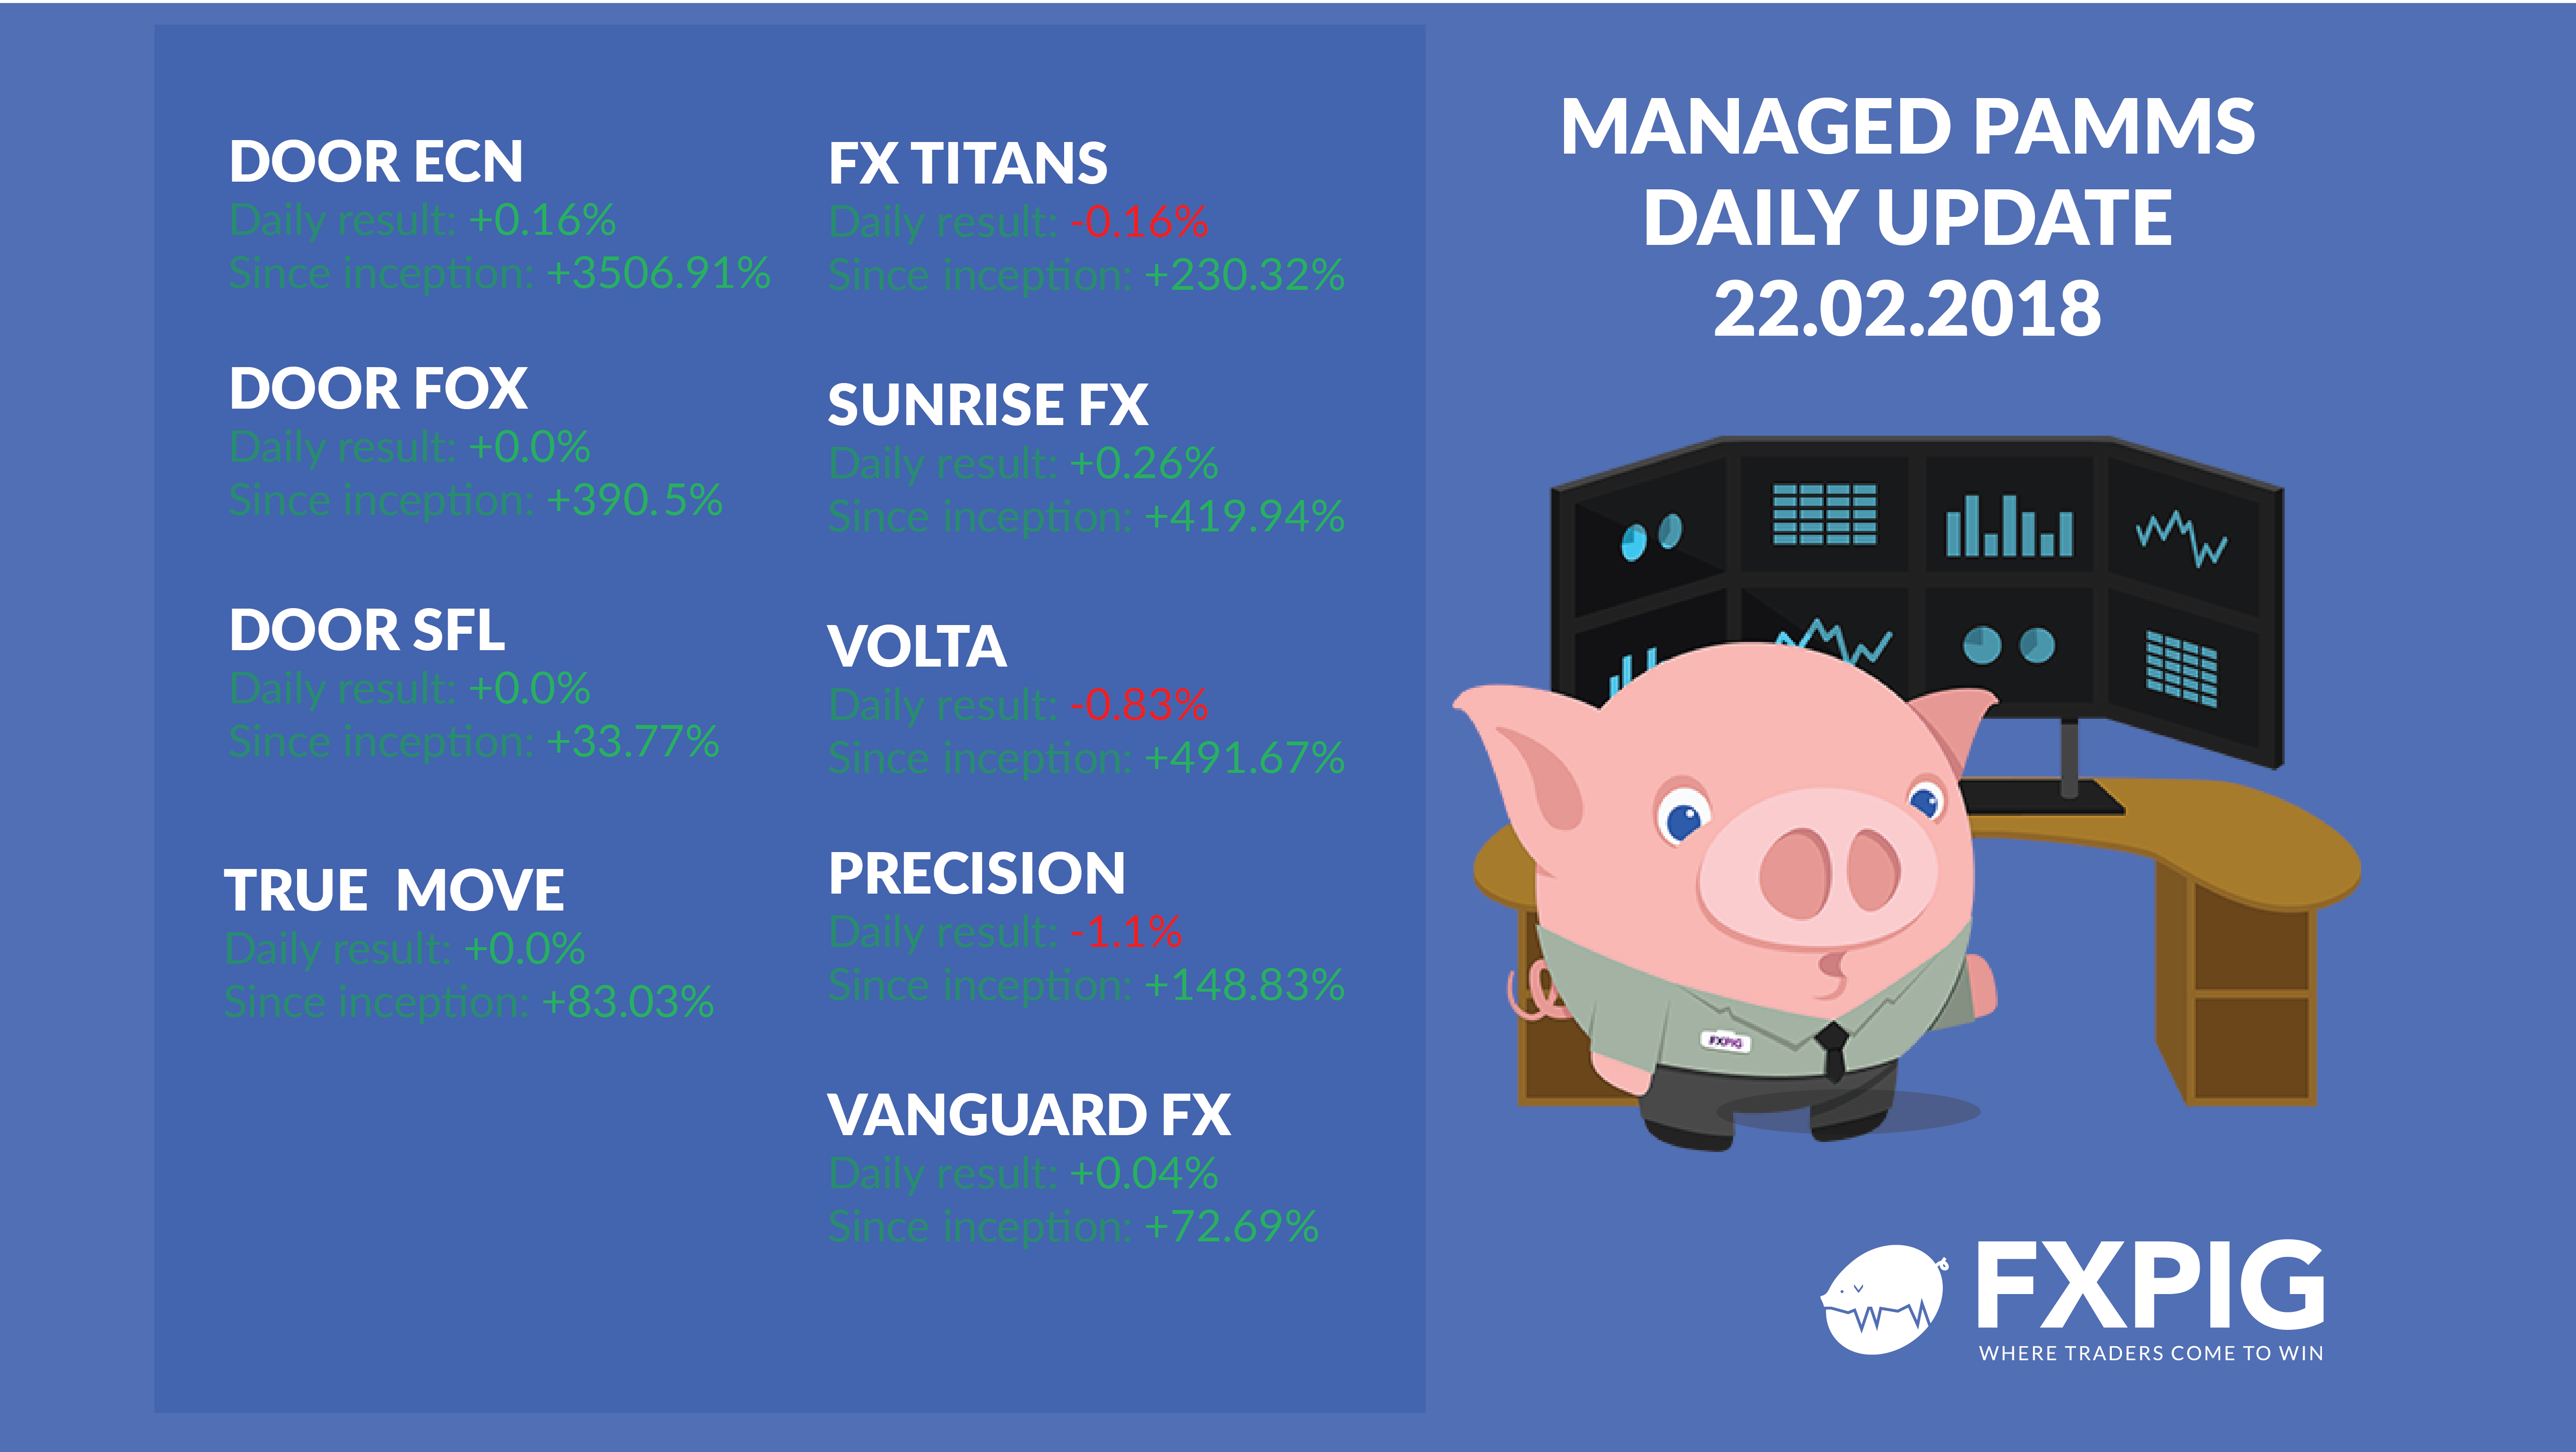 FOREX_PAMM-Daily-updates_results-22-02-2018_FXPIG